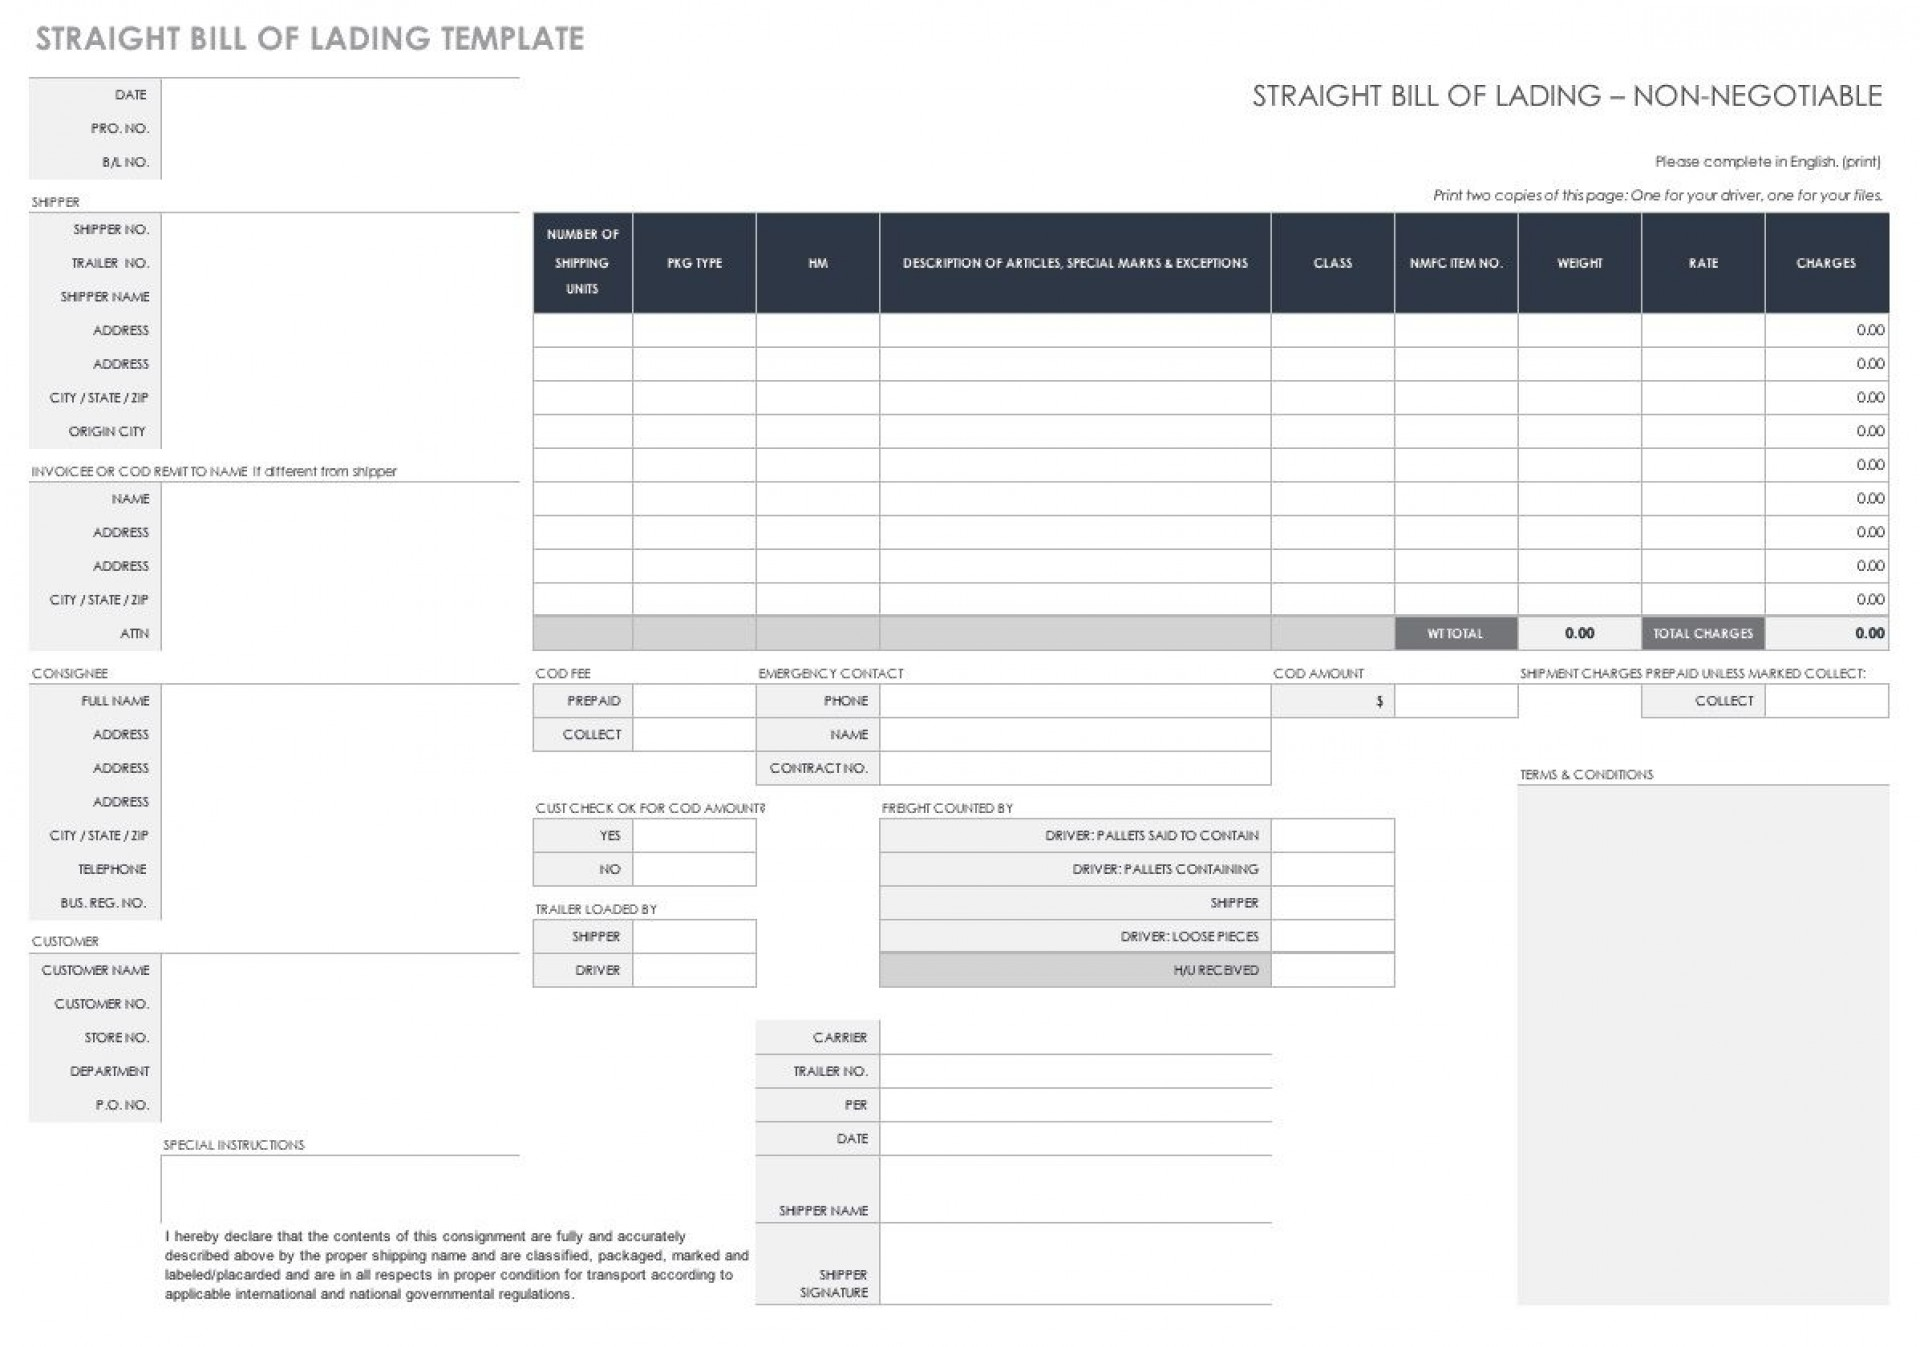 008 Amazing Bill Of Lading Template Excel Idea  Simple House Format In1920